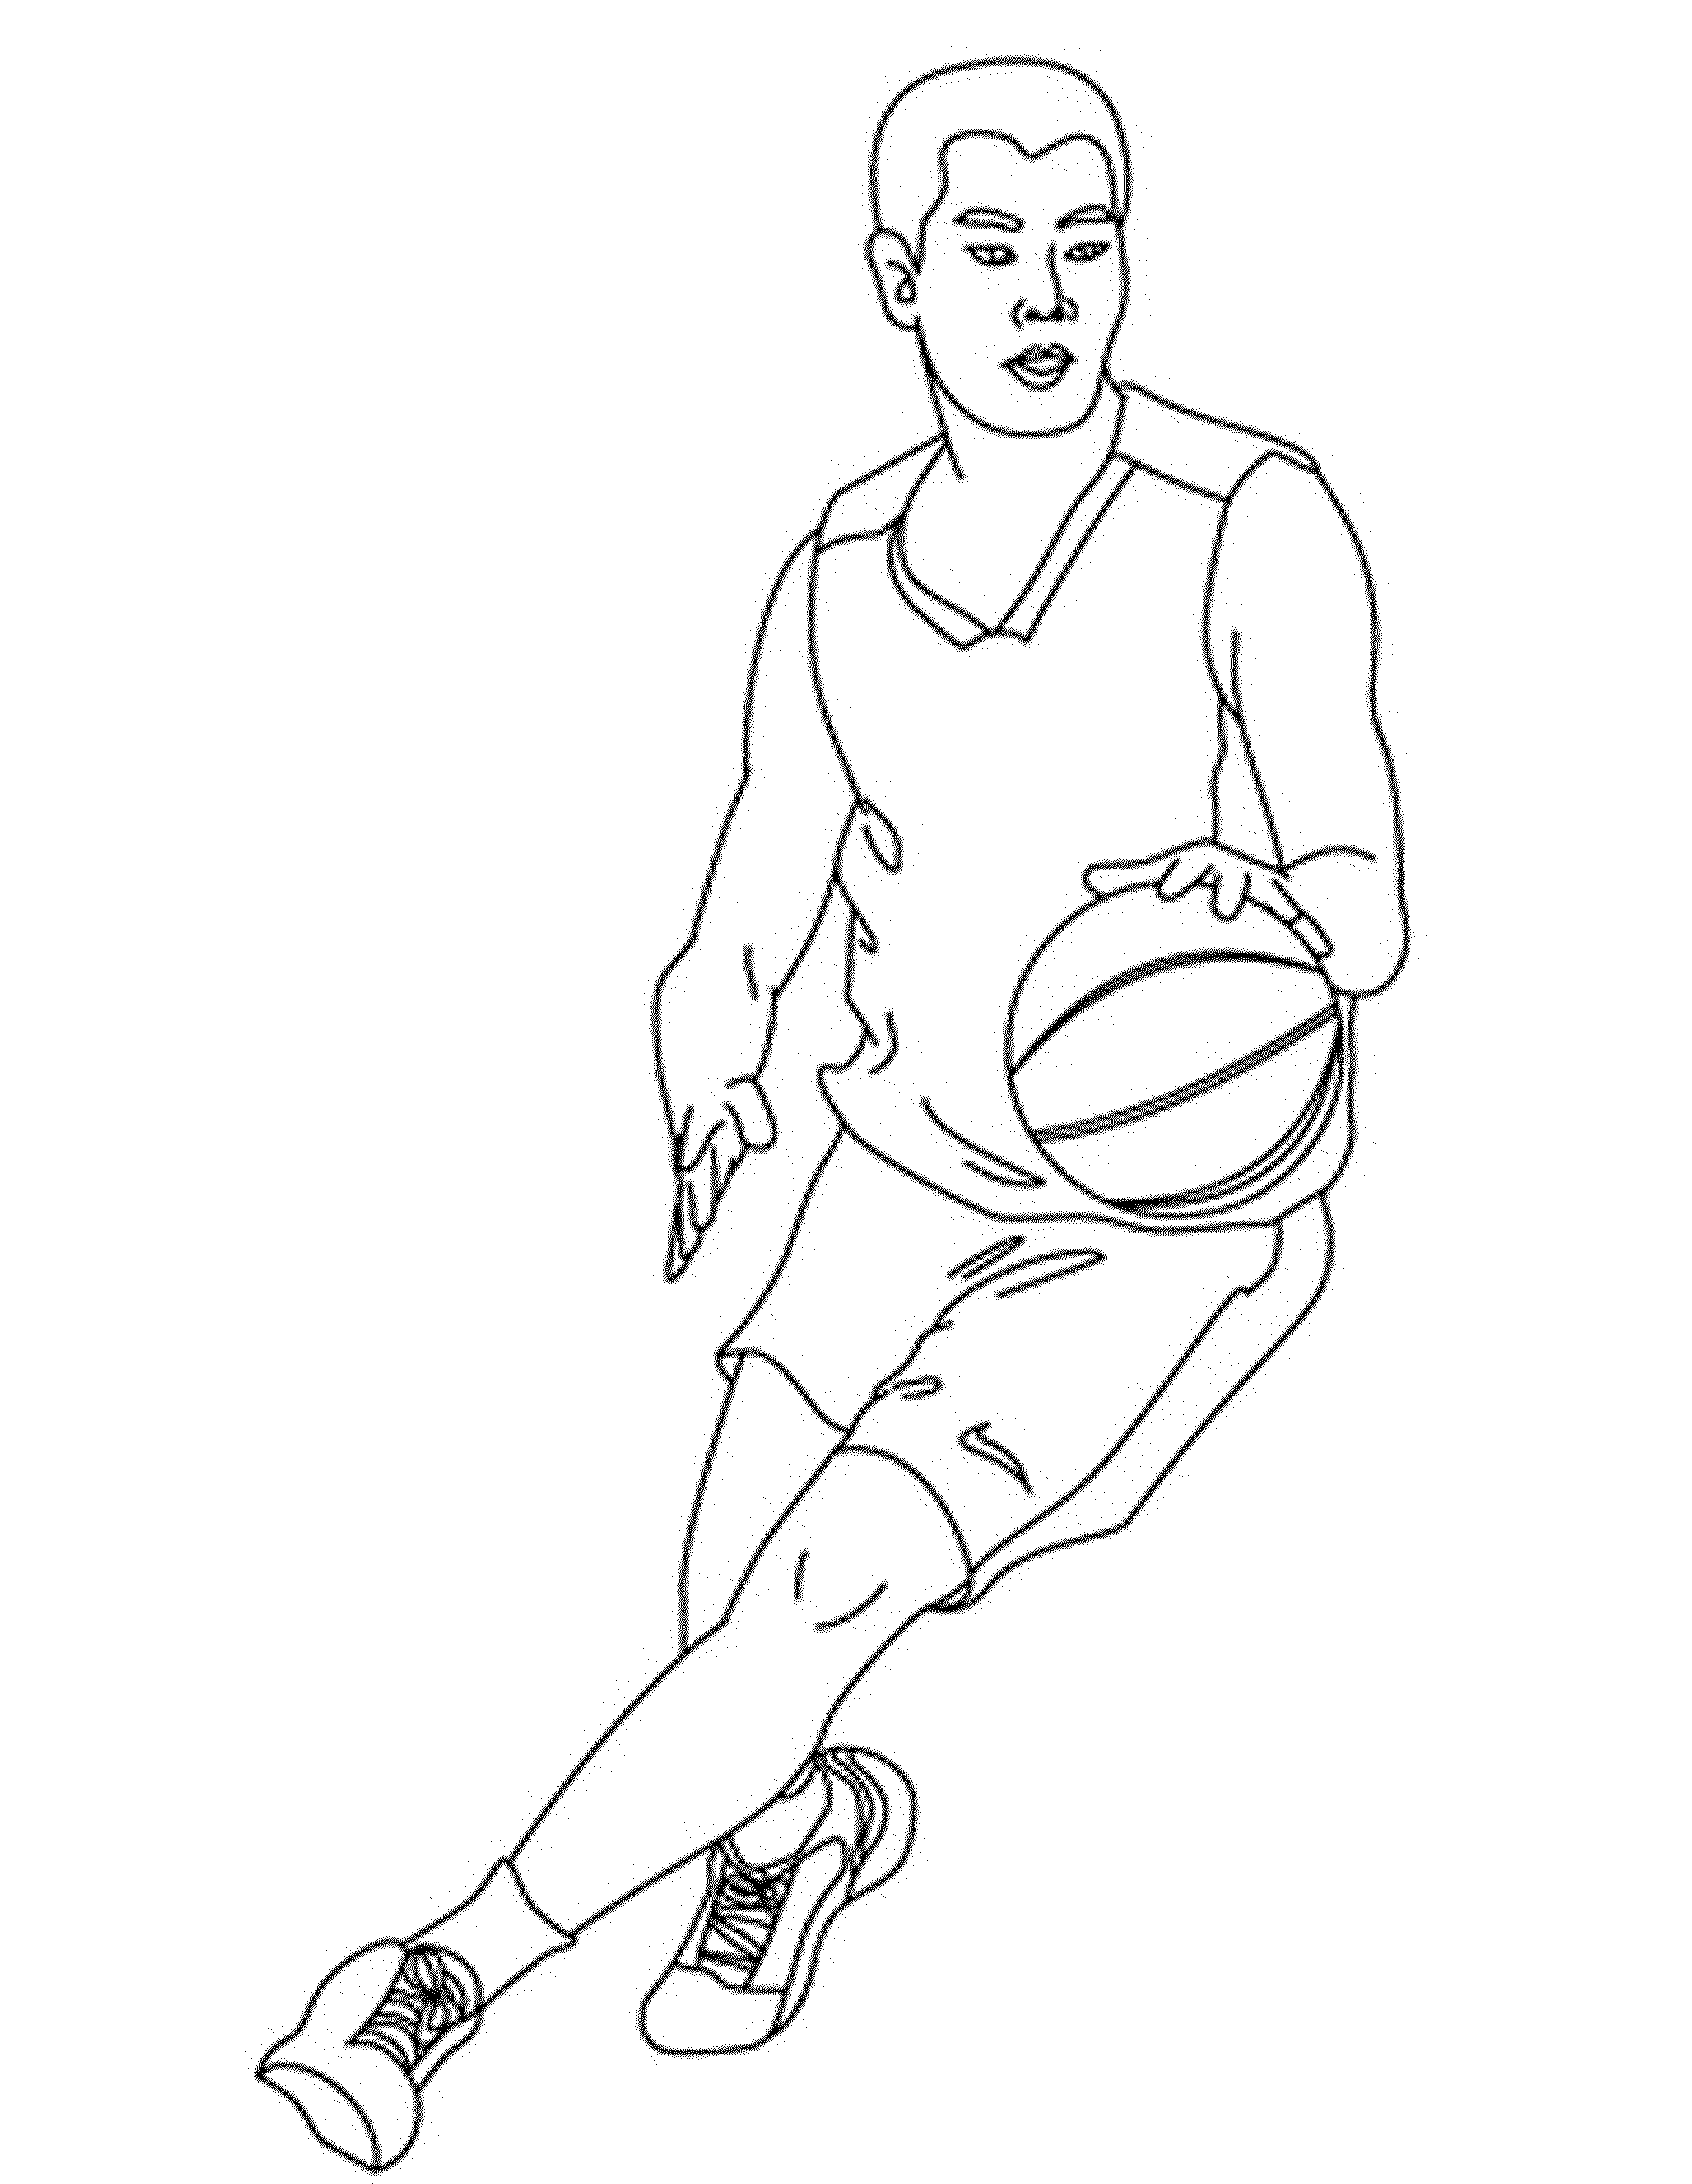 realistic basketball coloring pages - Coloring Pages People Realistic